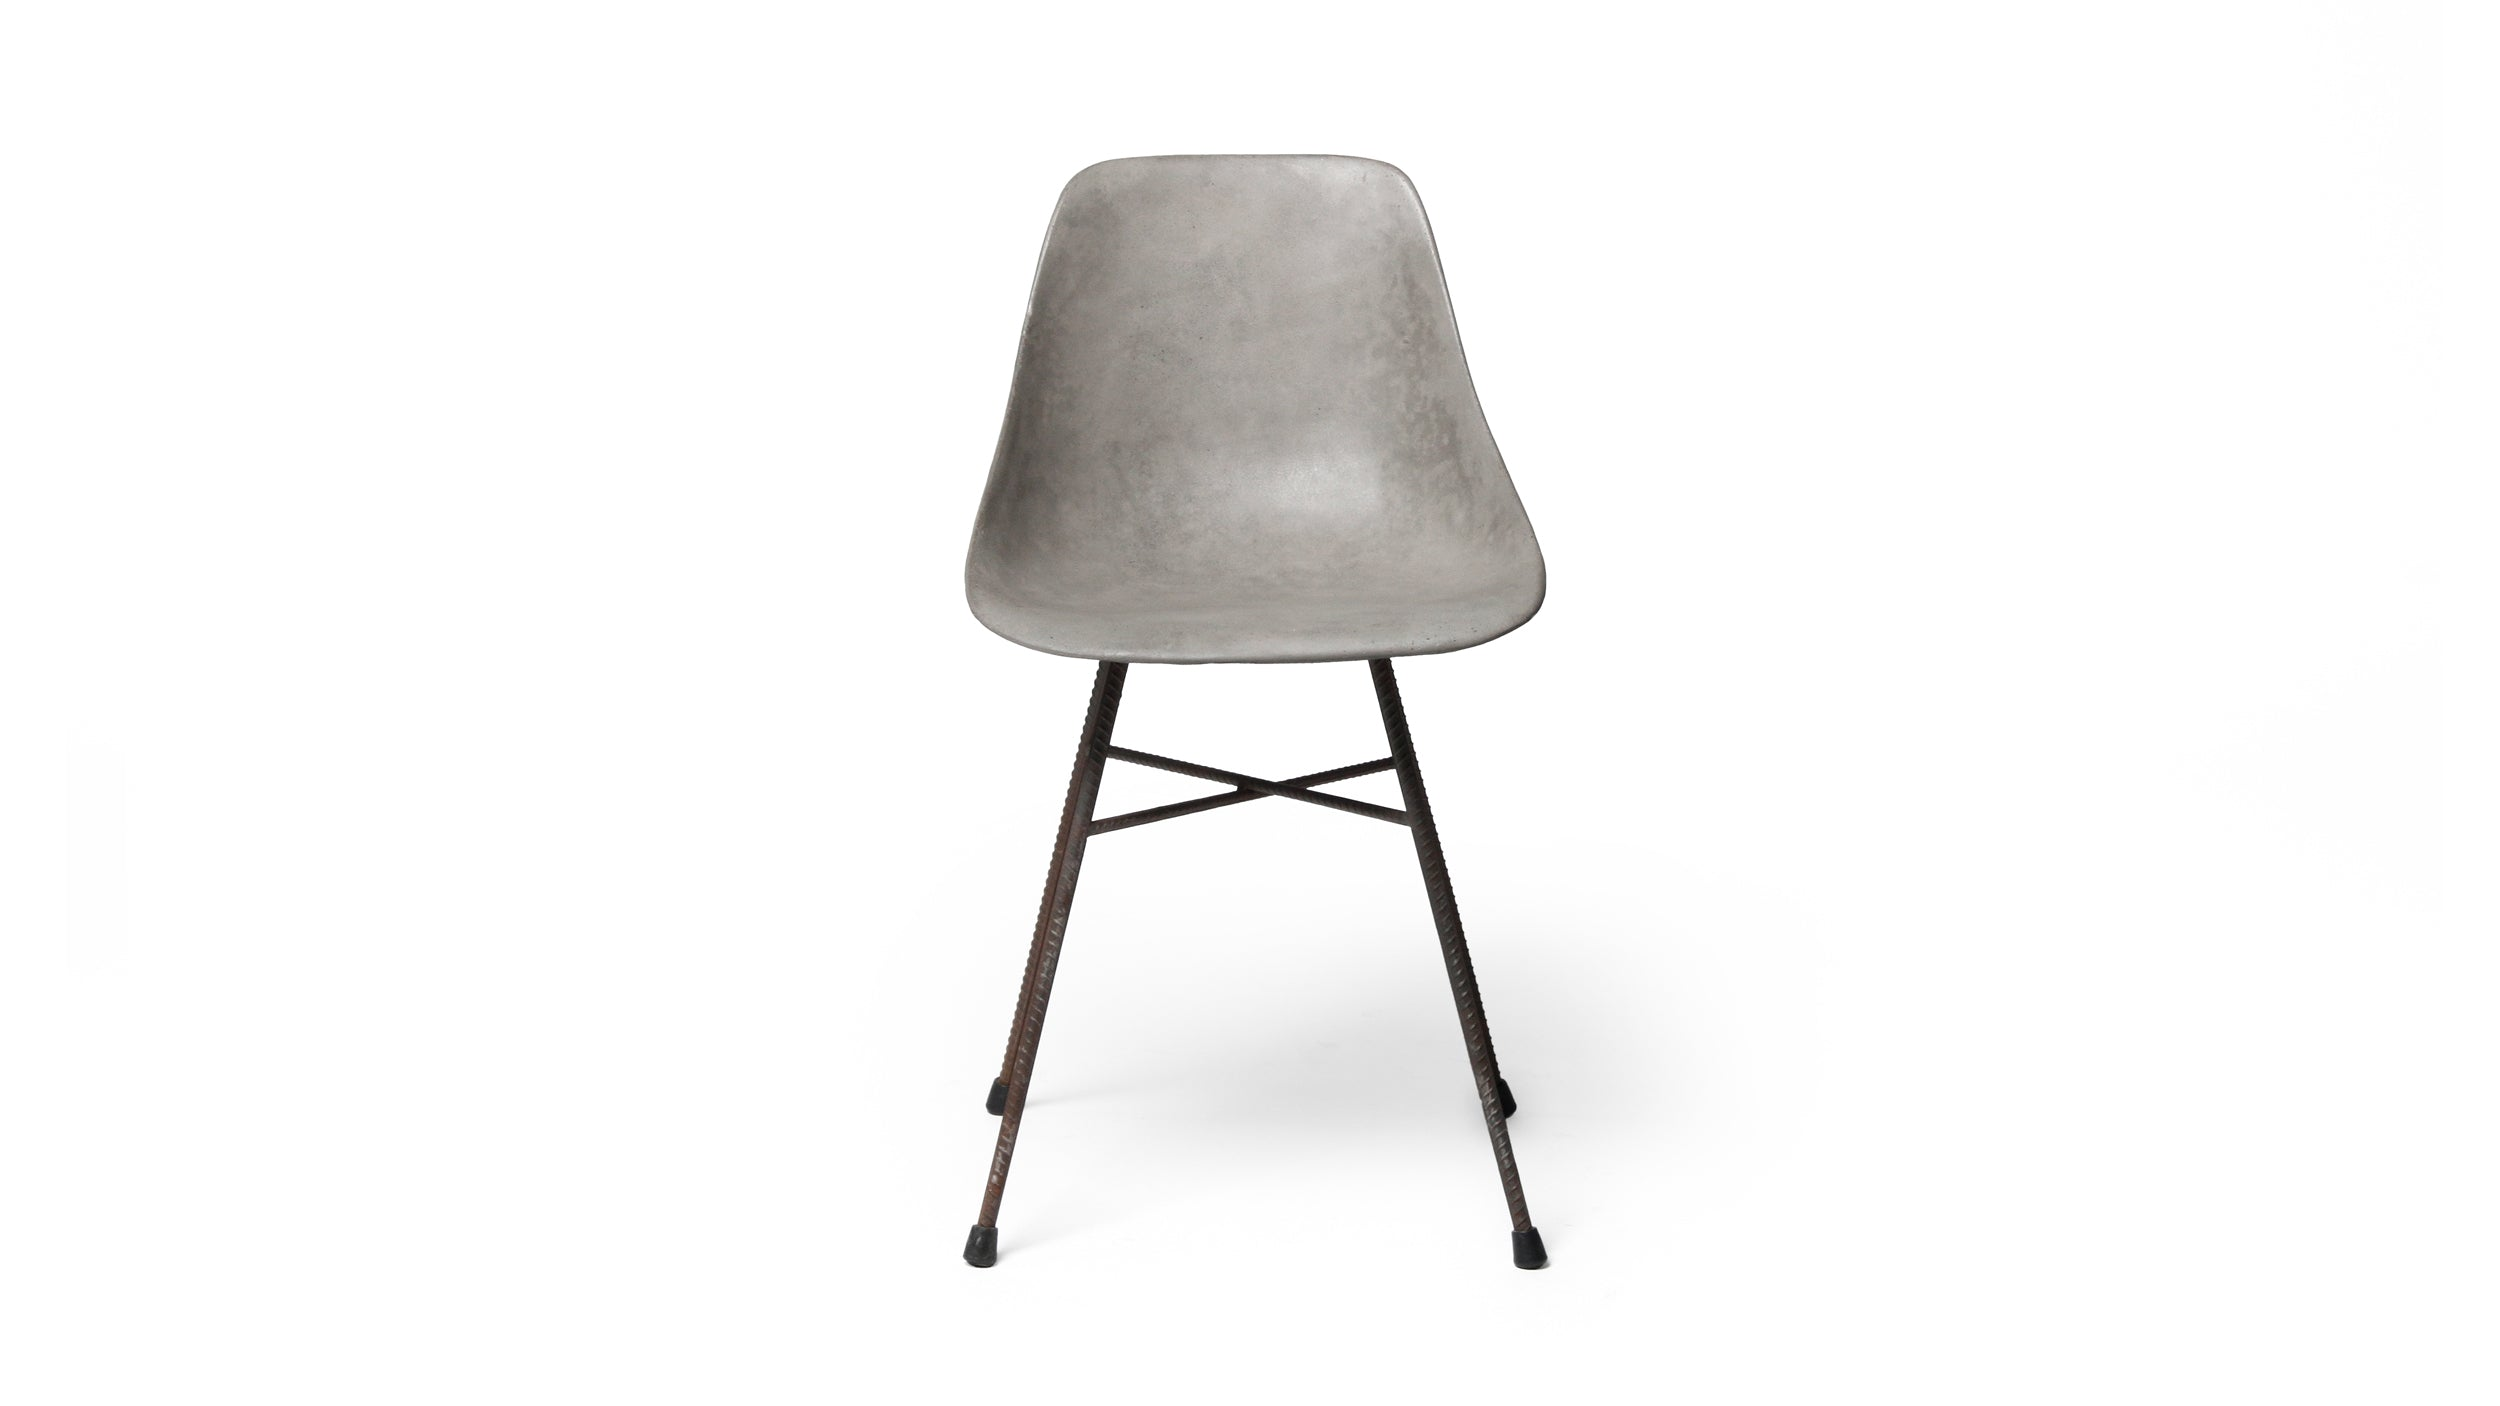 HAUTEVILLE MODERN CONCRETE & METAL DINING CHAIR